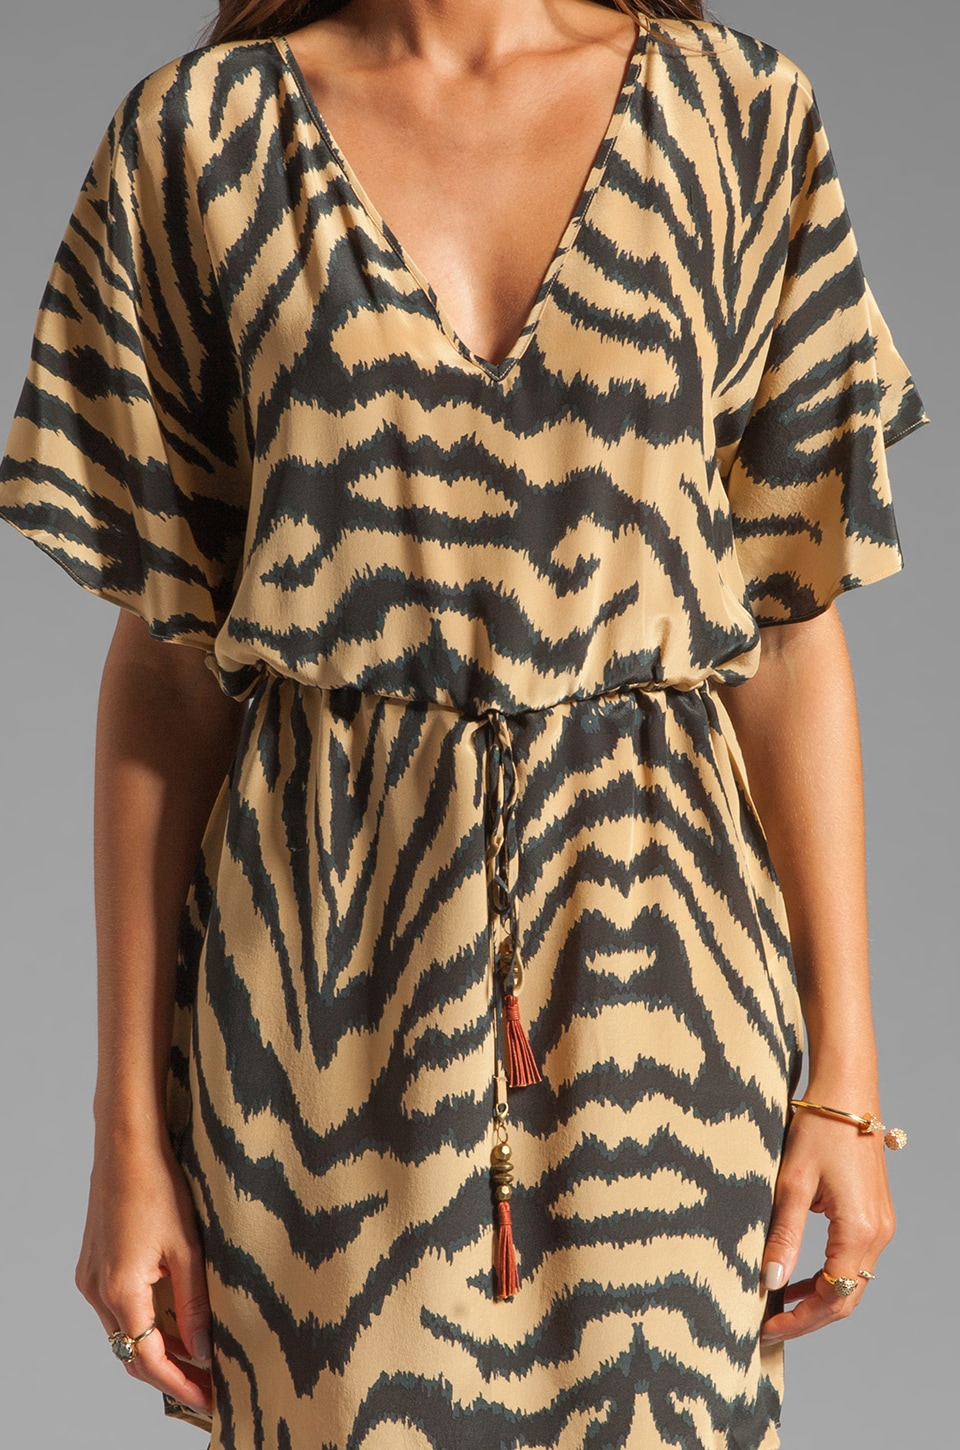 Vix Swimwear Cape Black Lilly Dress in Brown/Black